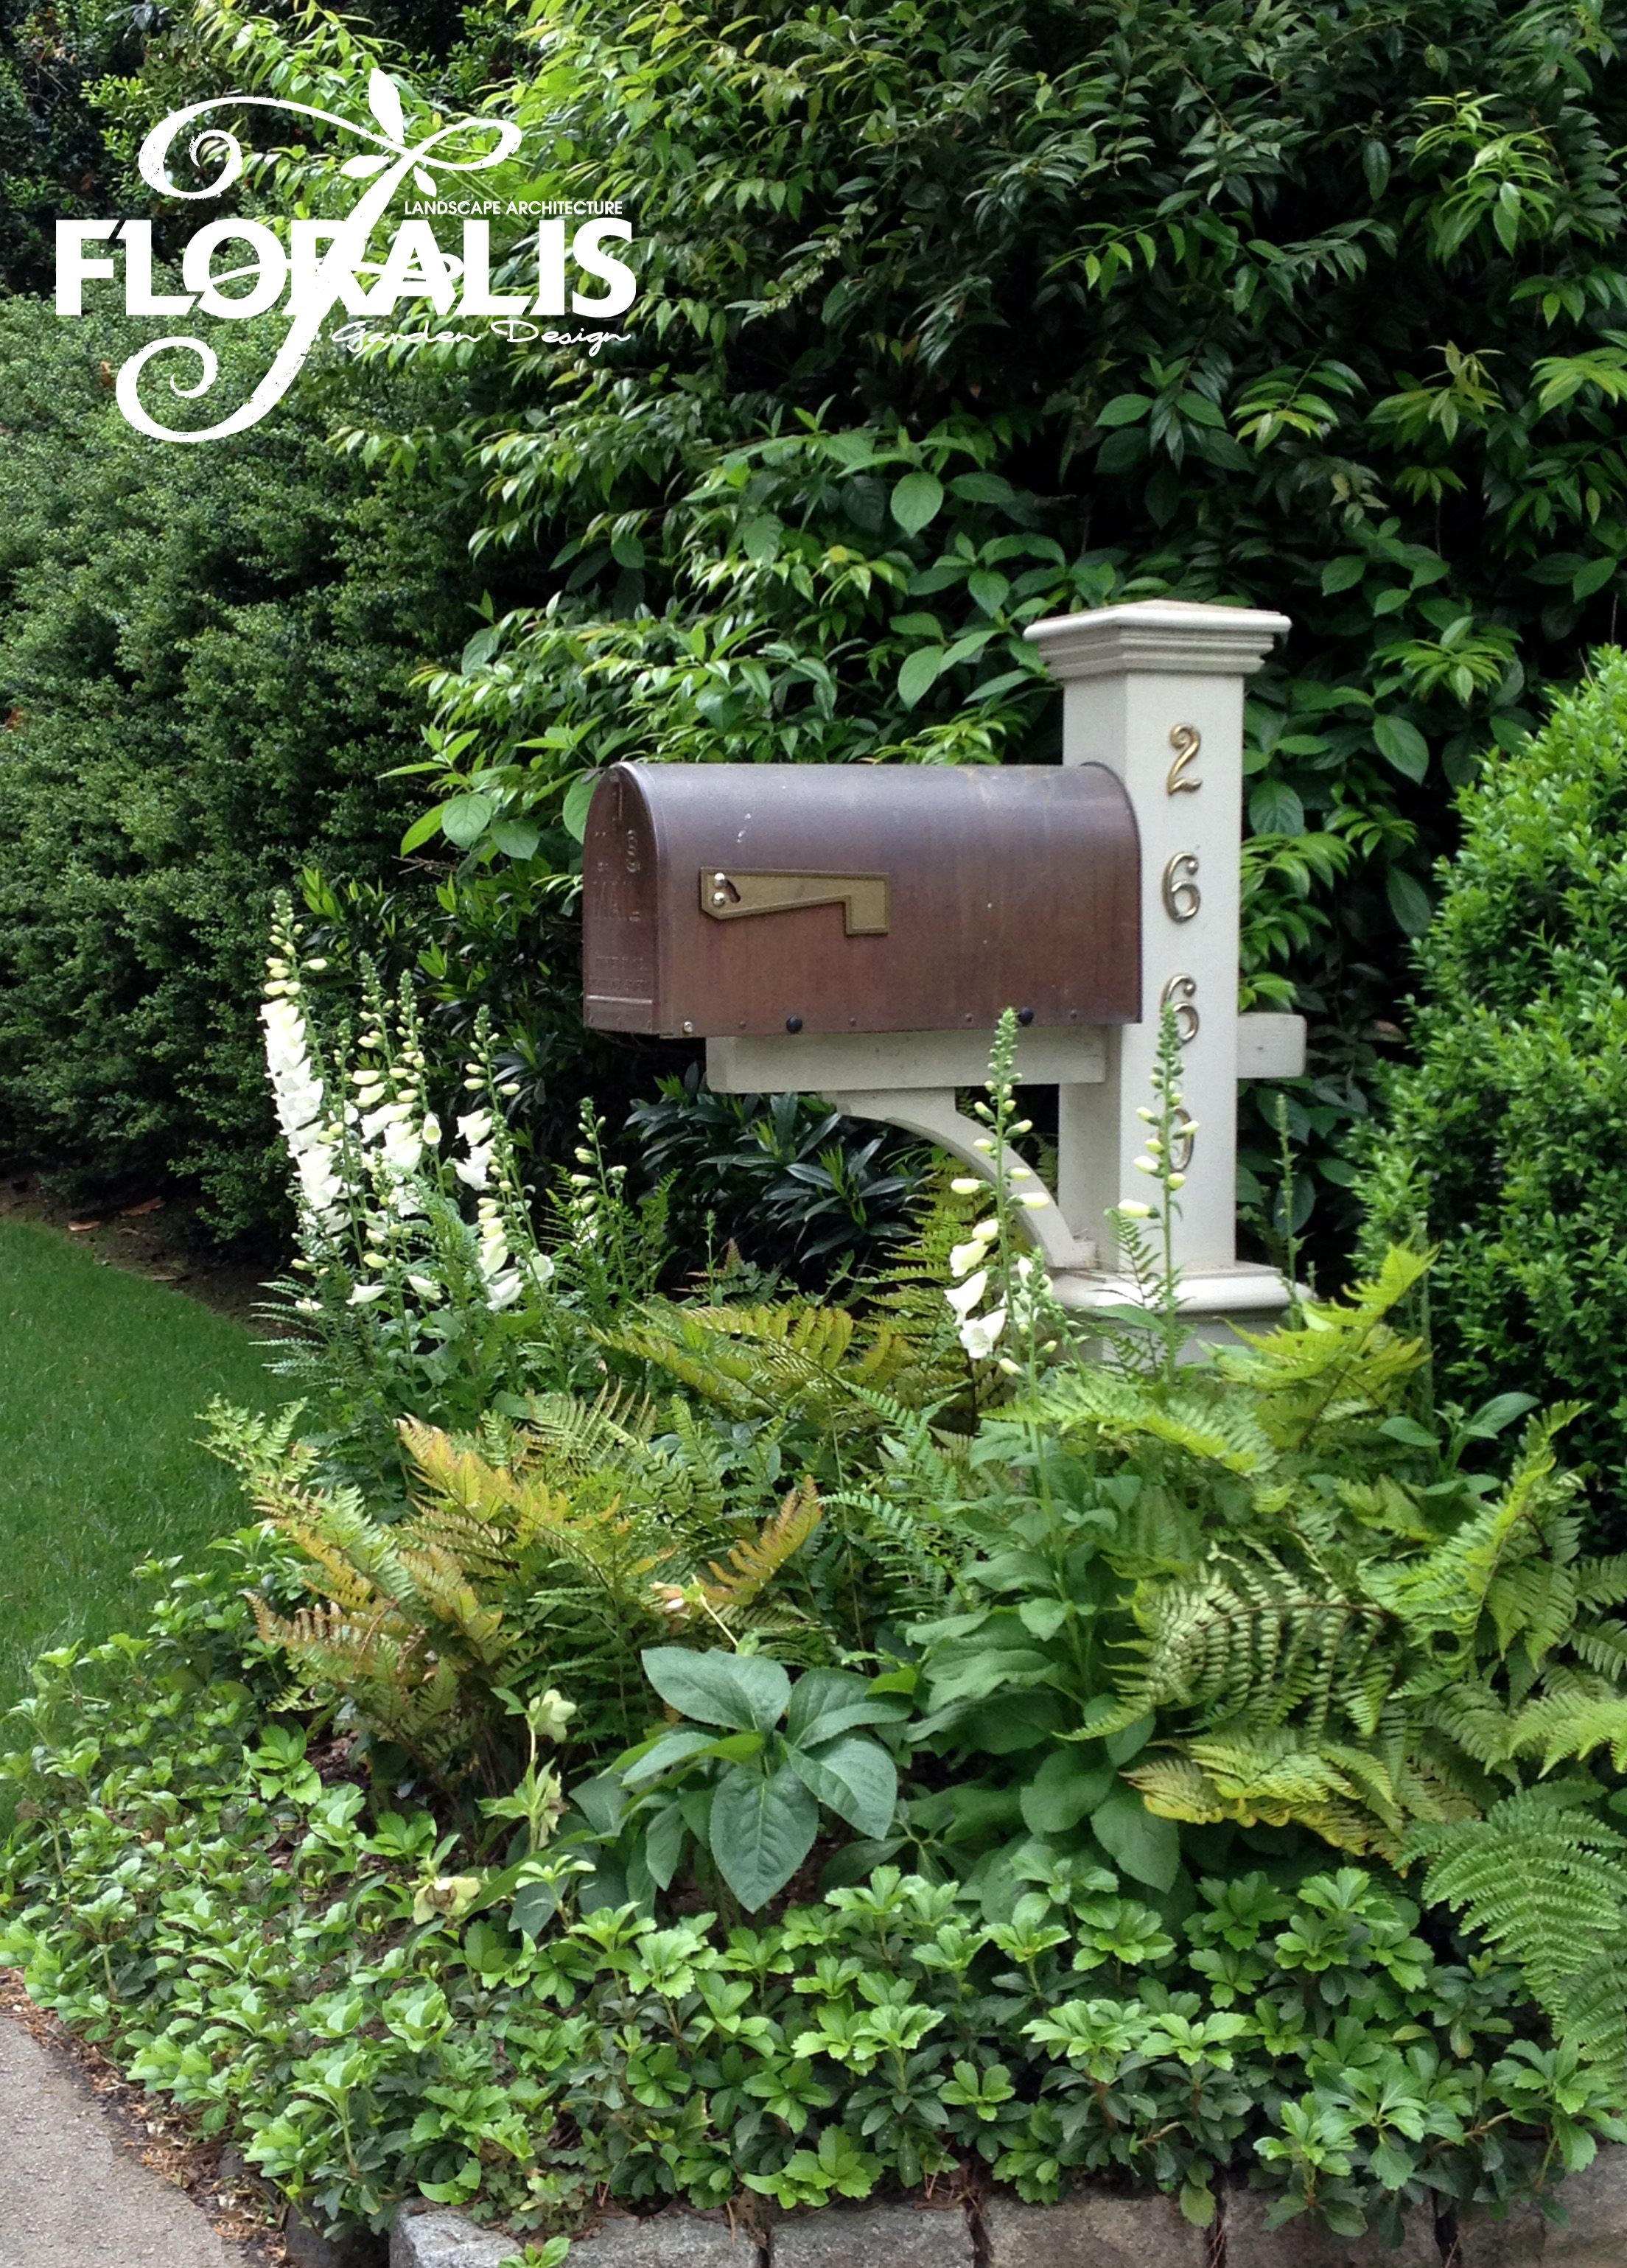 Mailbox Plantings By Floralis Mailbox Plants, Mailbox Flowers, Mailbox  Garden, Mailbox Landscaping,